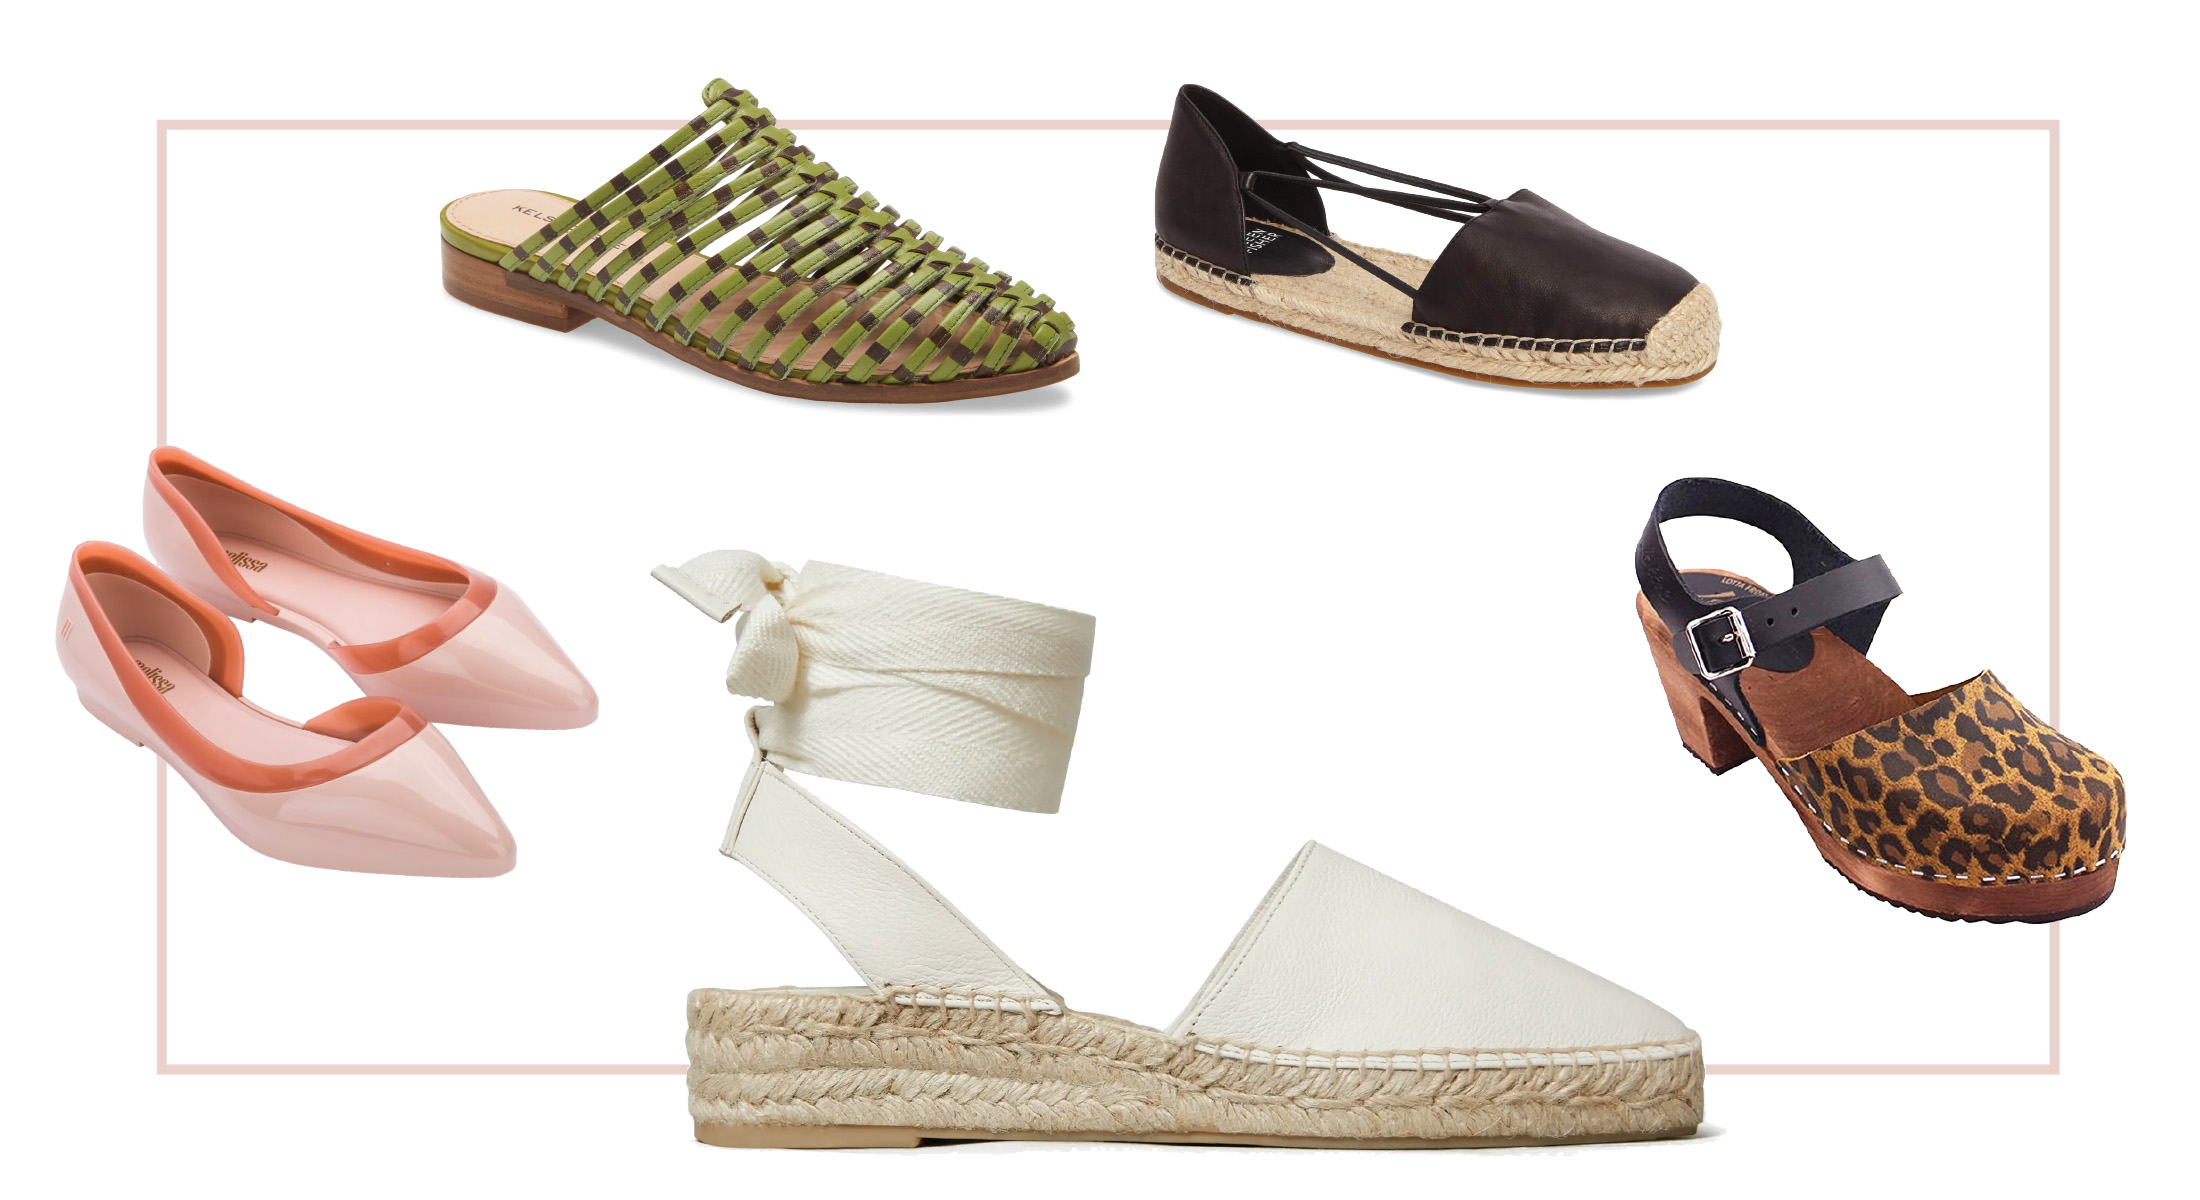 Closed-Toe Shoes for Summer